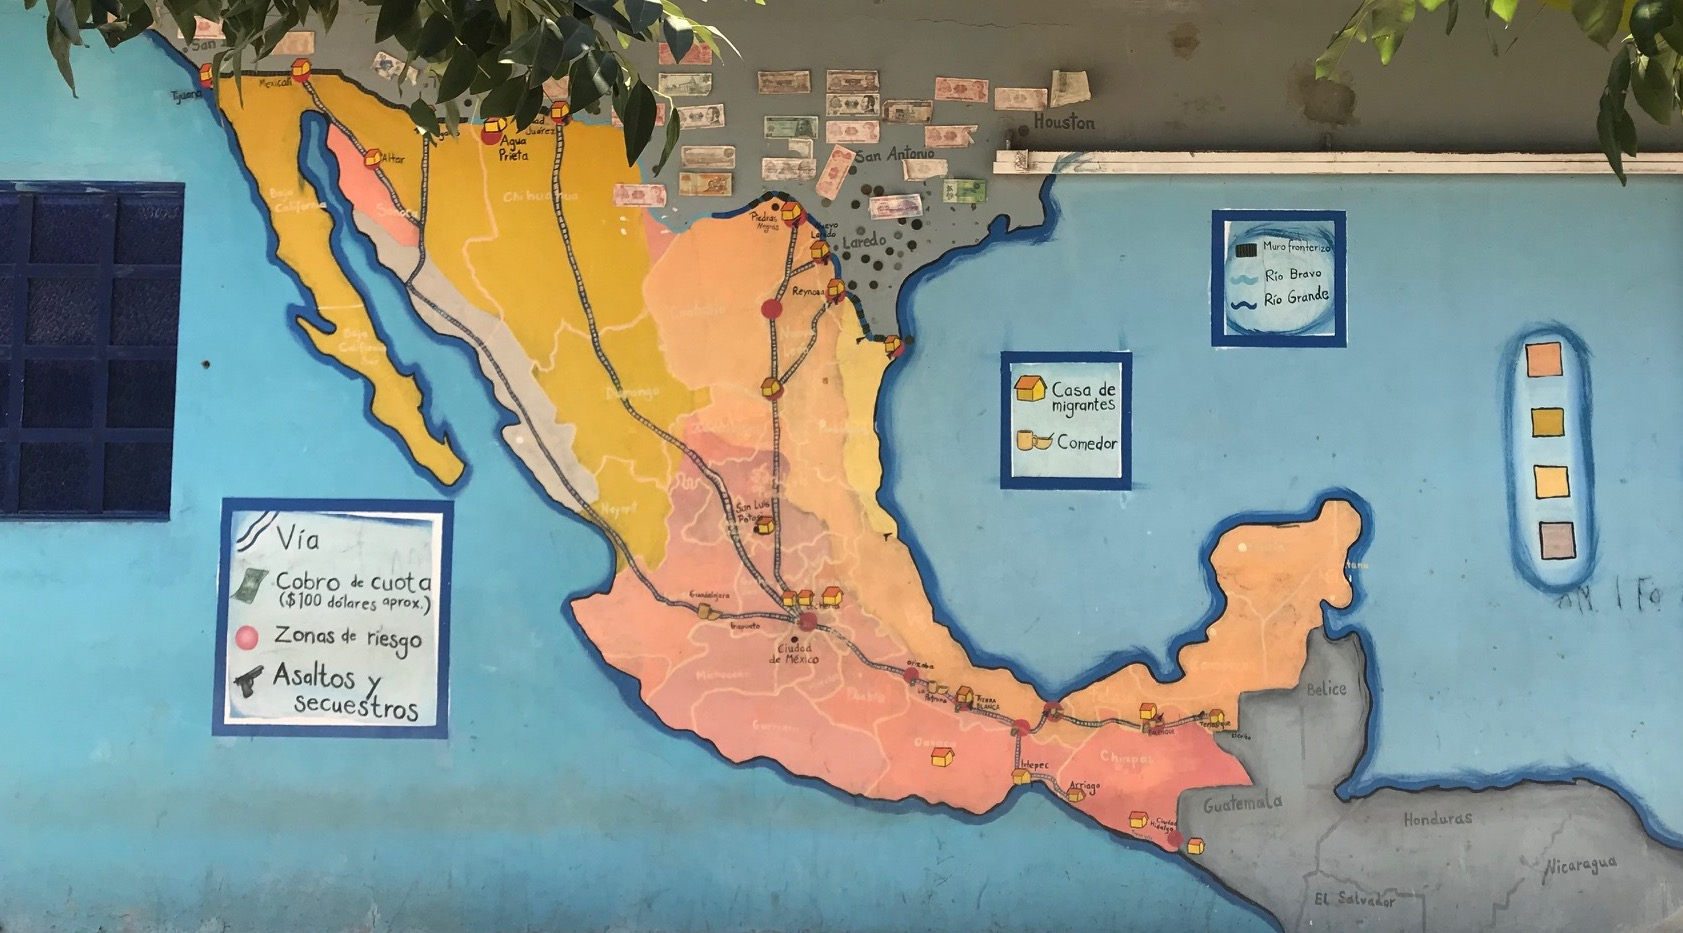 Mural of migration routes through Mexico